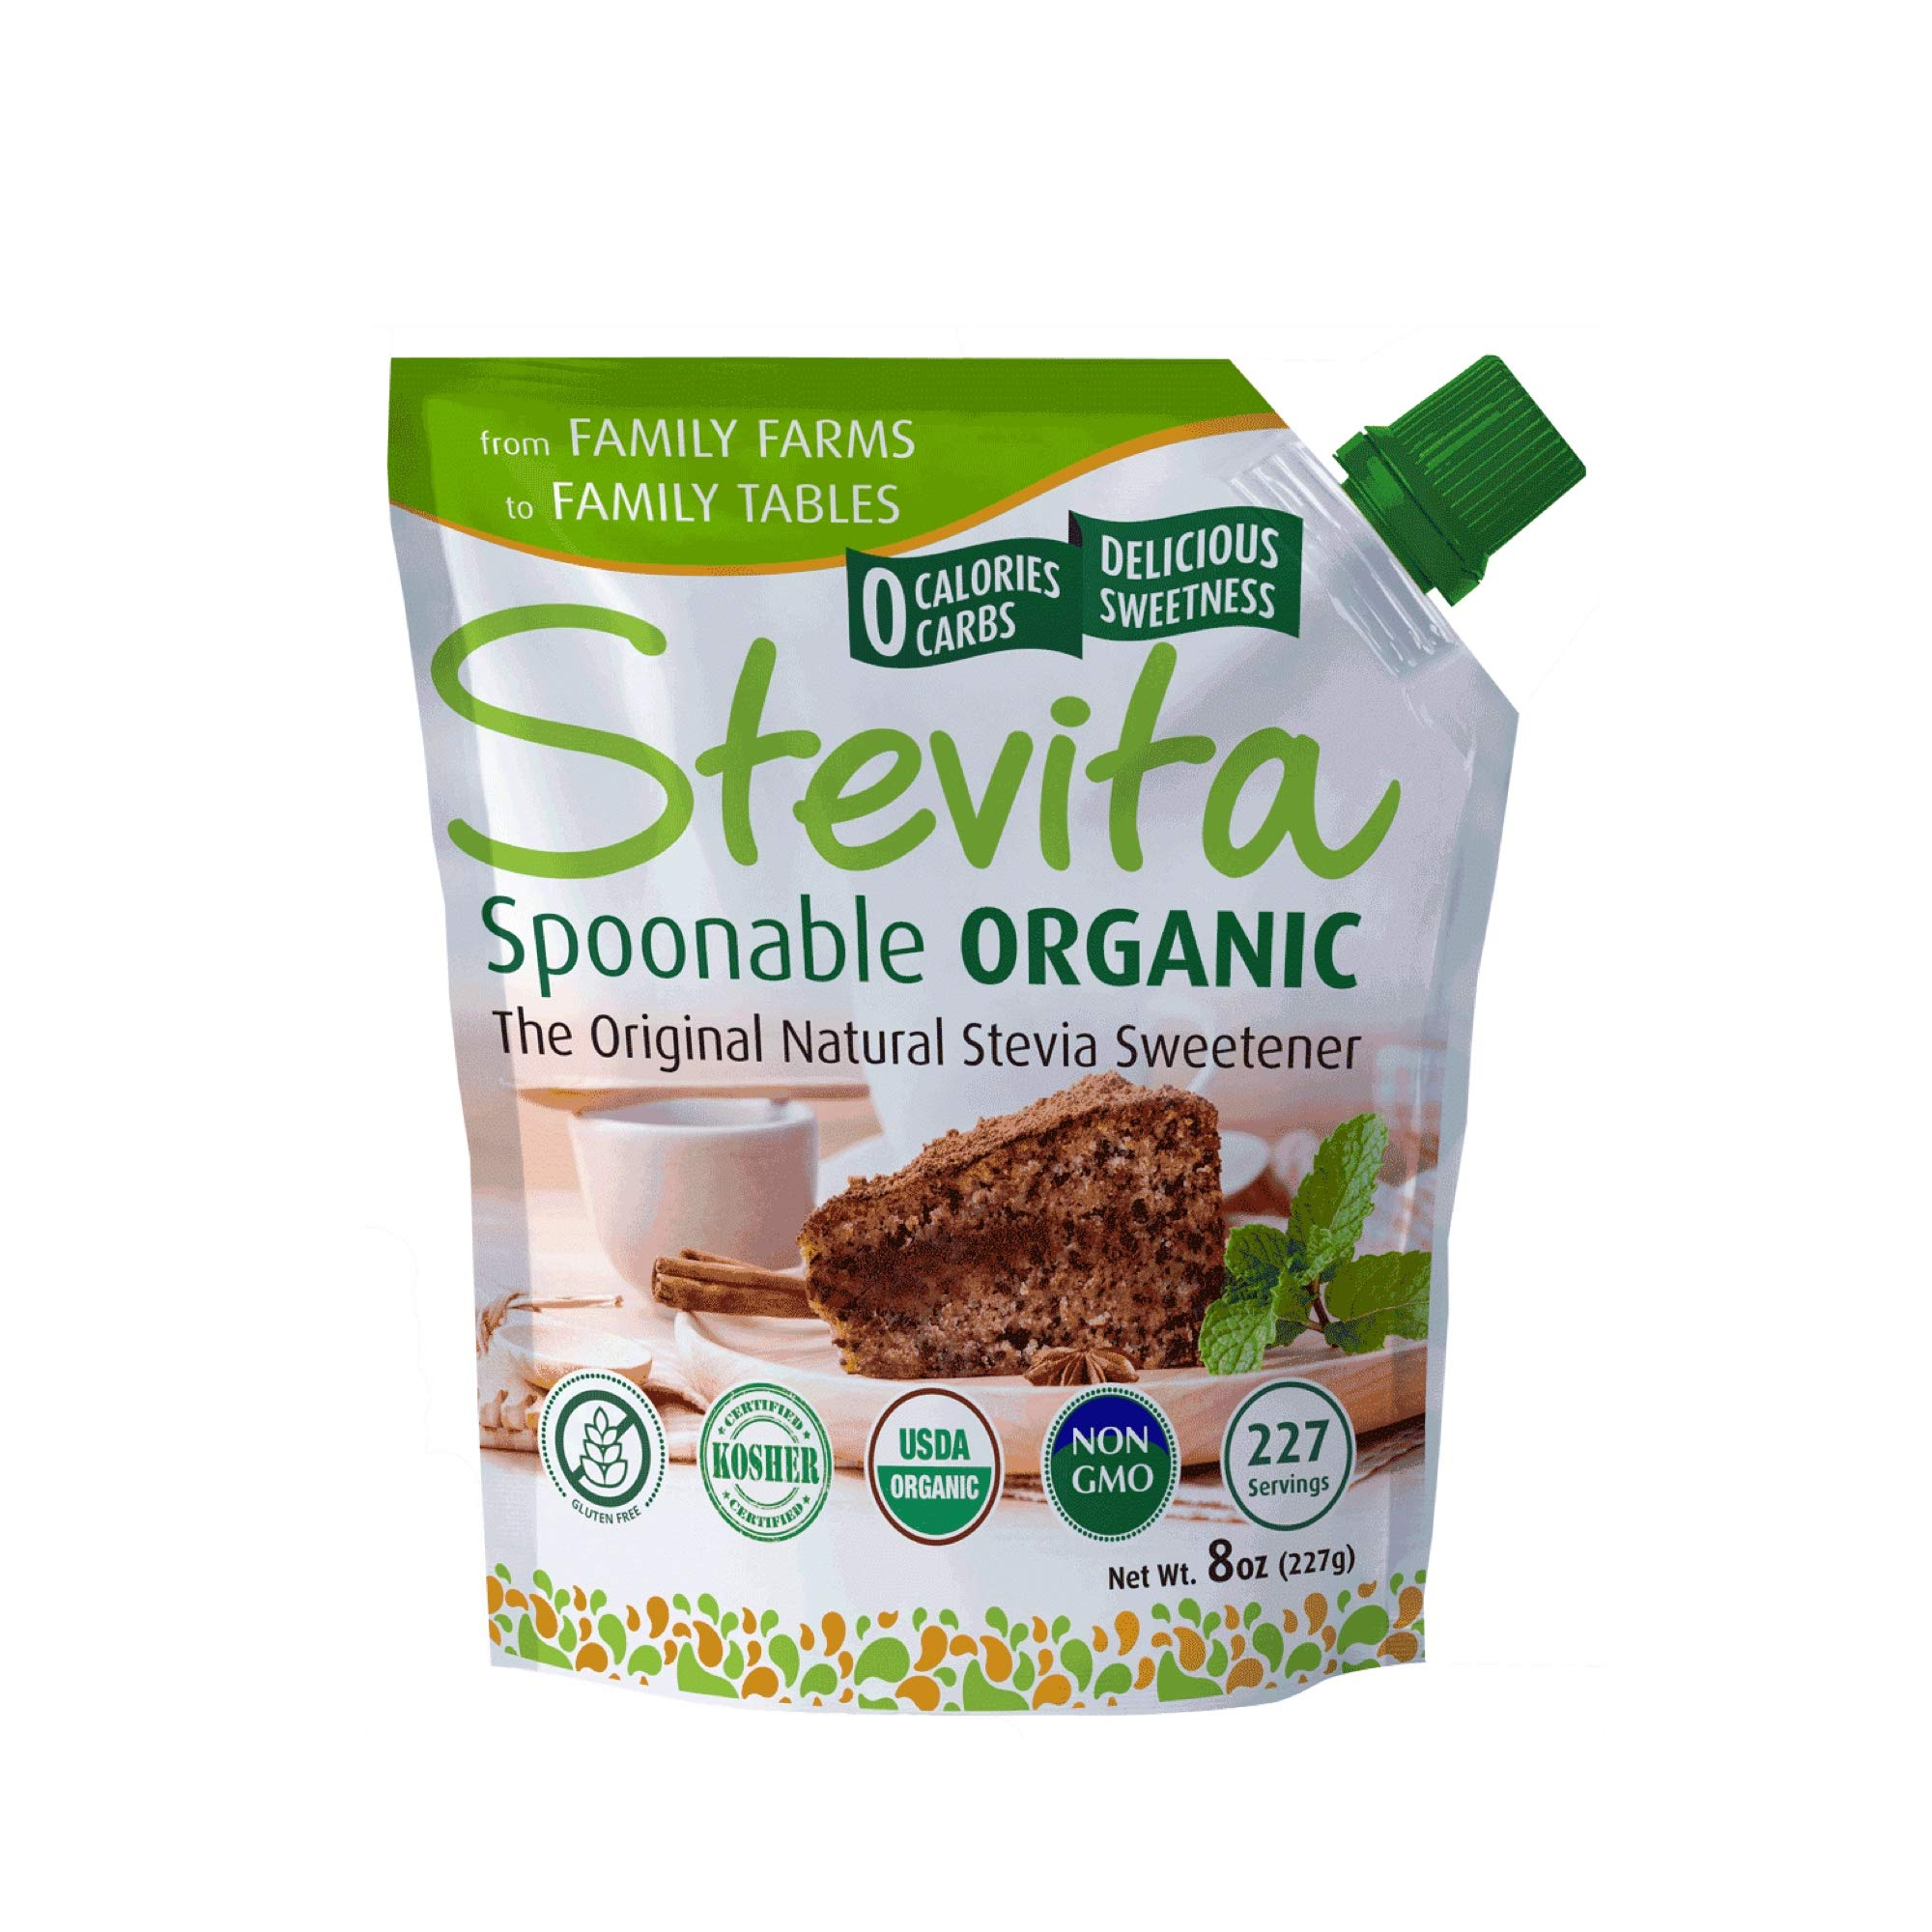 Stevita Organic Spoonable Stevia Pouch - 8 Ounces - All Natural Stevia Extract, Natural Sweetener - USDA Organic, Non GMO, Vegan, Kosher, Keto, Paleo, Gluten-Free - 227 Servings by STEVITA (Image #9)